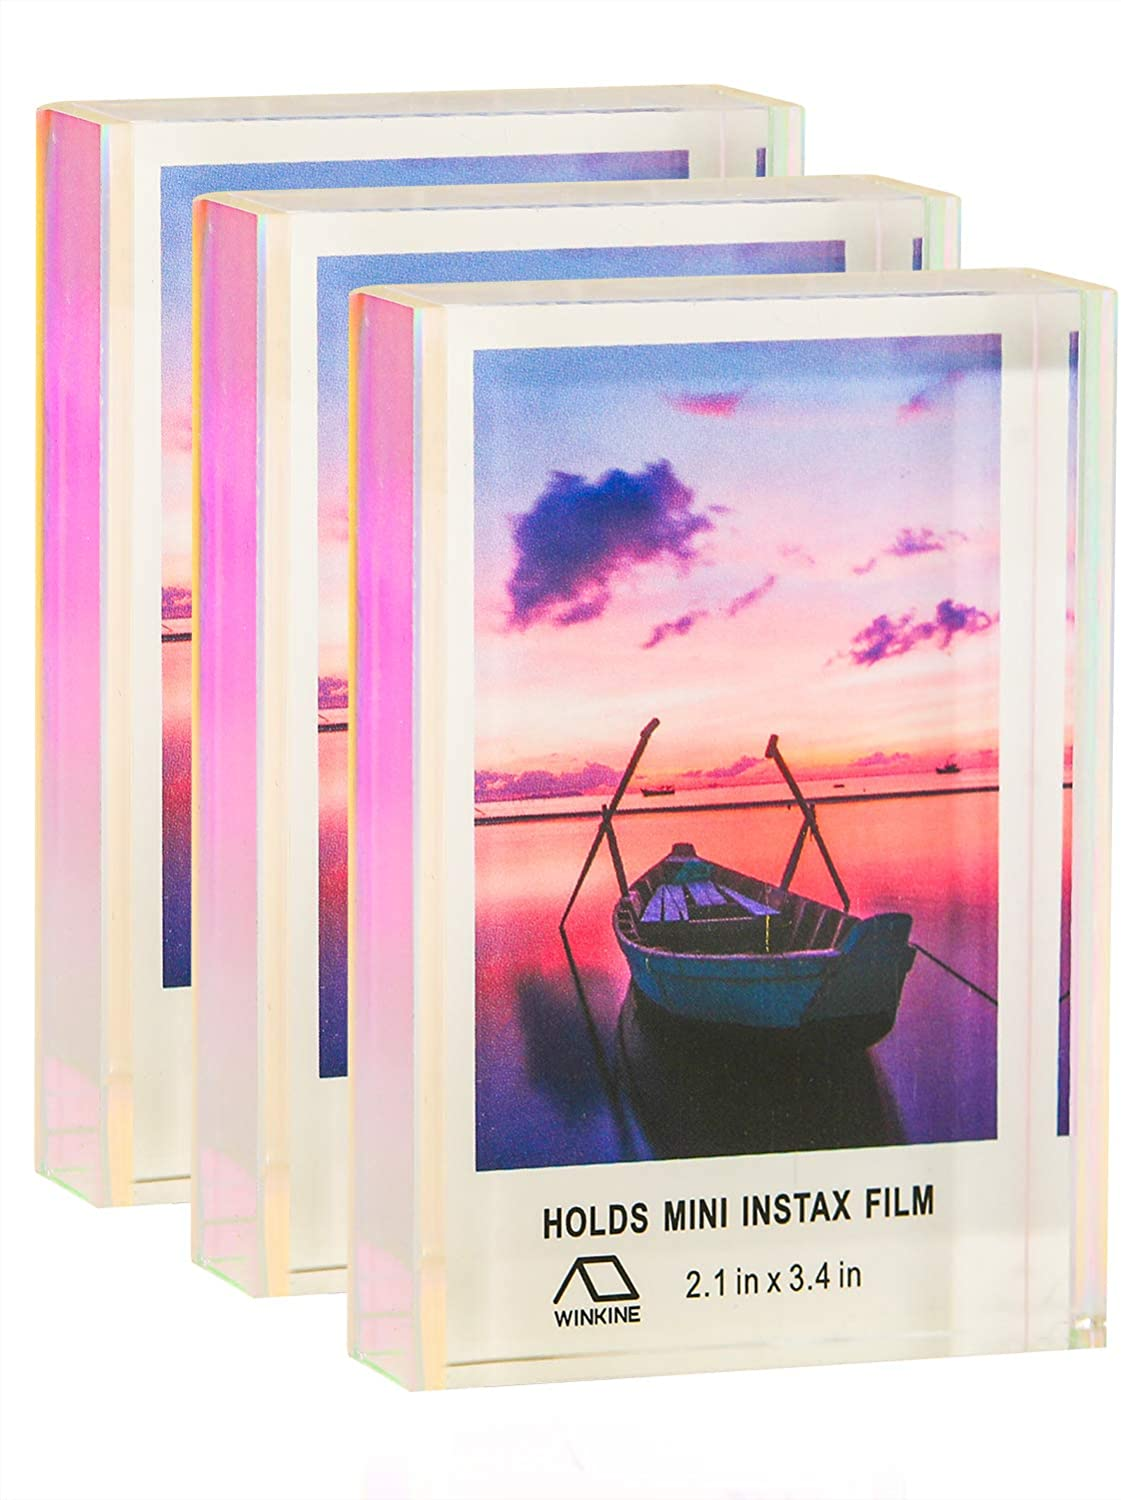 WINKINE Instax Mini Frames 2x3, Rainbow Self Standing Floating Polaroid Picture Frames for Home & Office Decor, 3 Pack Desktop Sliding Mini Photo Frames for Fujifilm & Polaroid Film